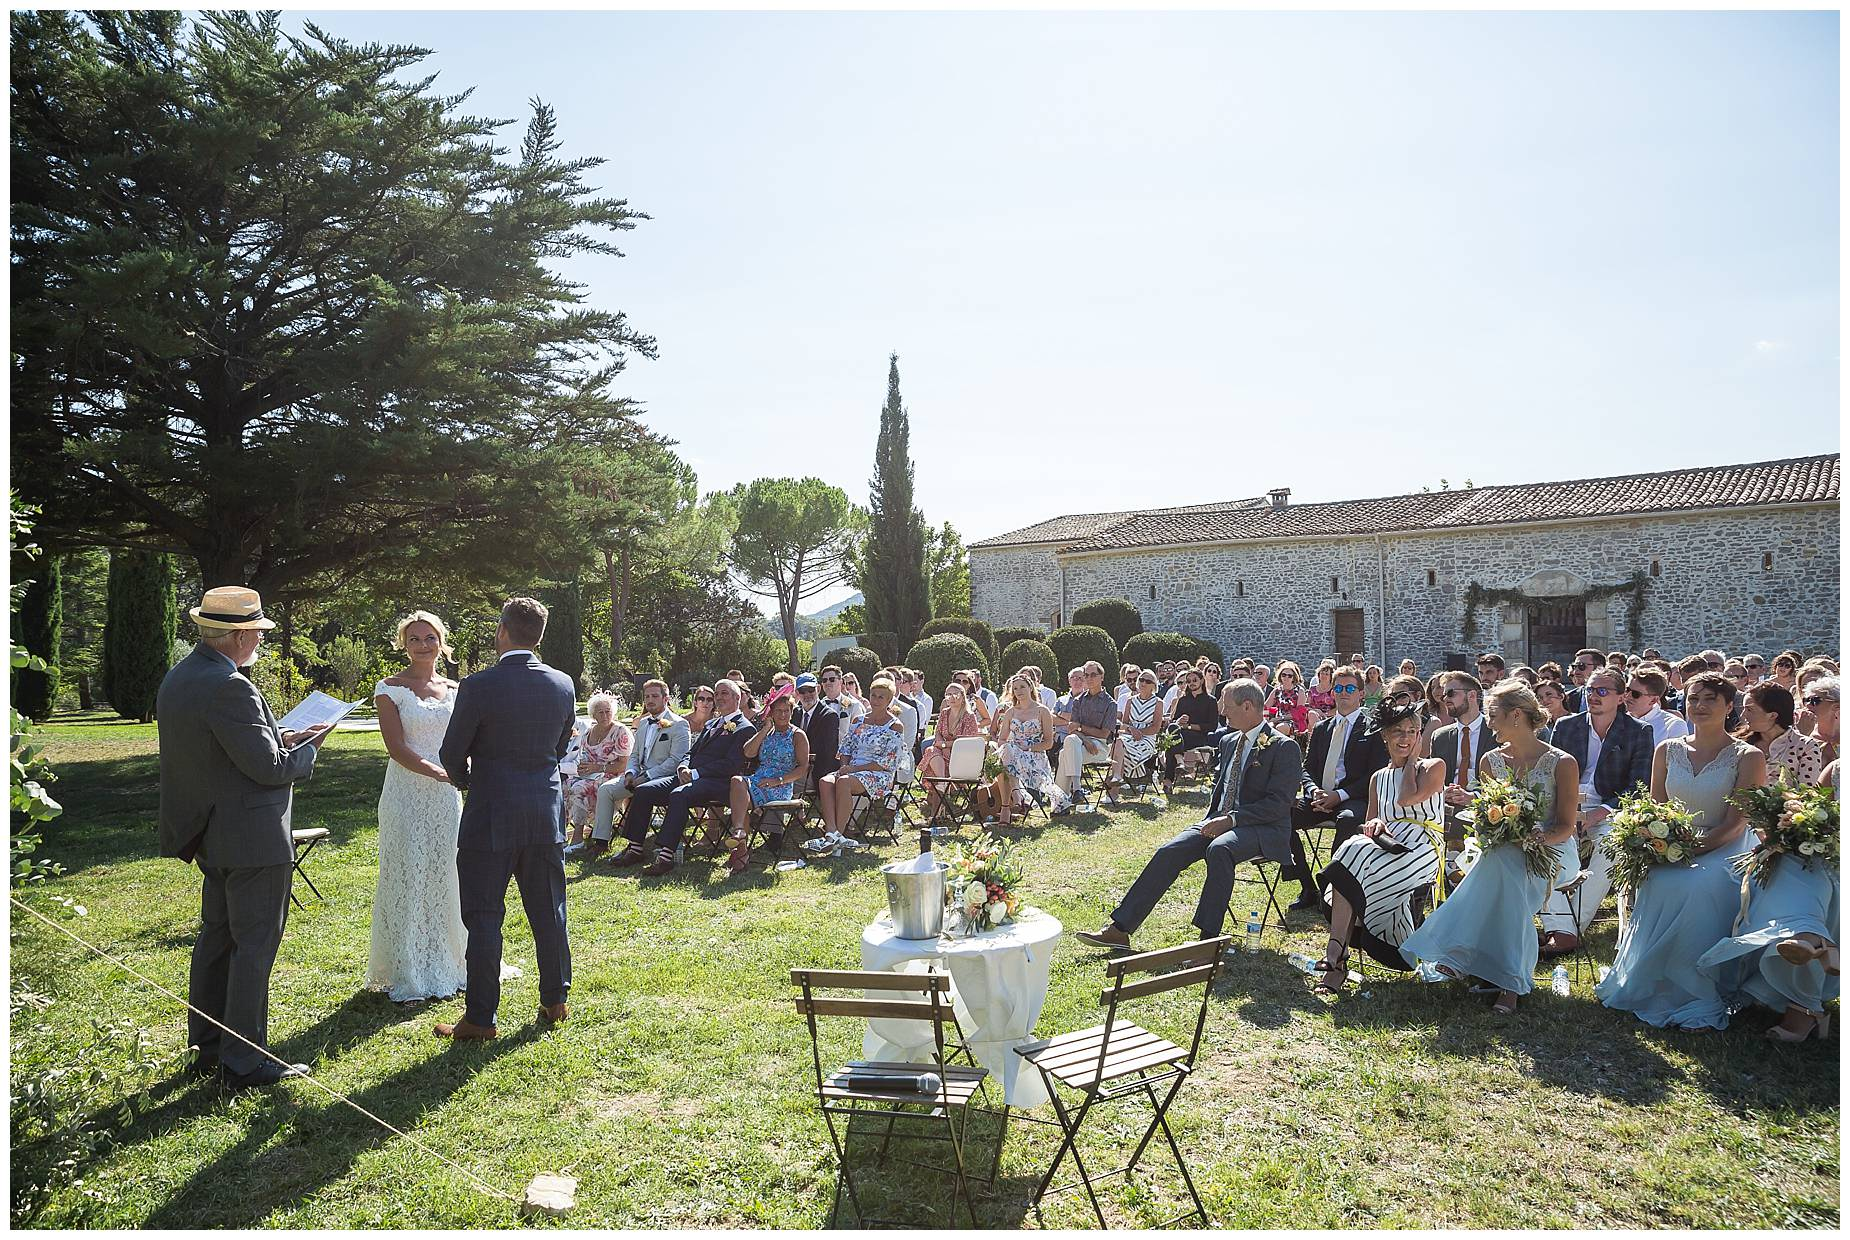 outside ceremony at Domaine Saint Germain Wedding